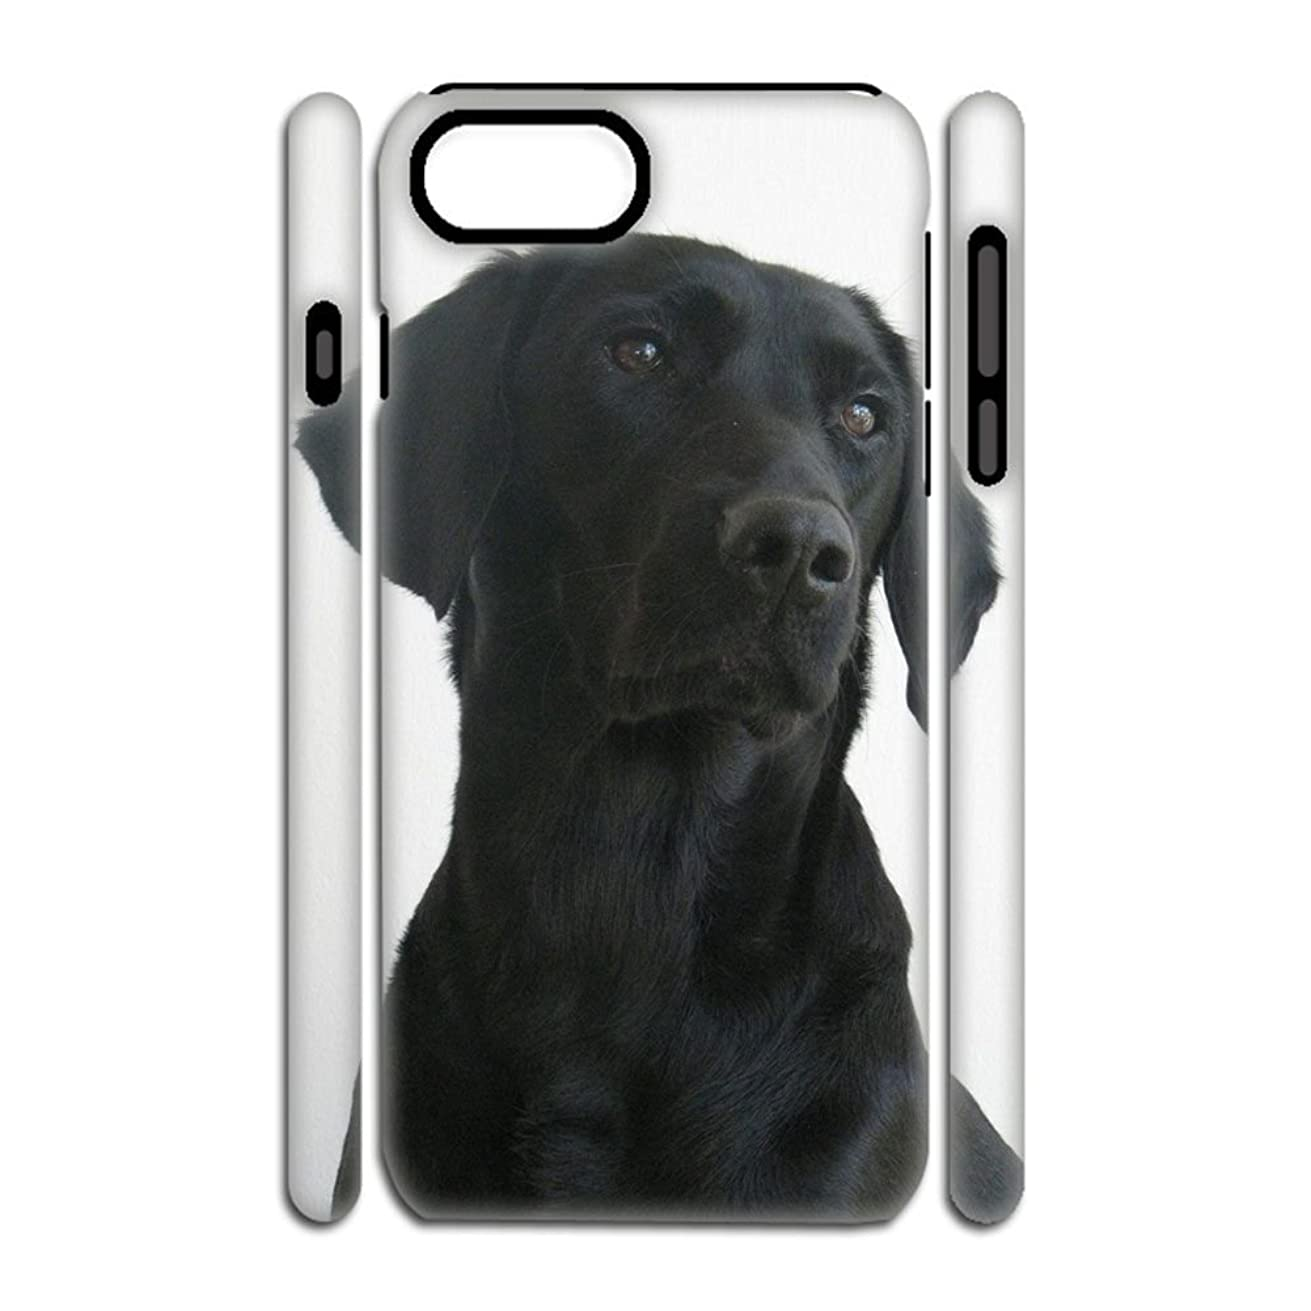 For Men Individuality Soft Silica Gel And Rigid Plastic Cases Have Labrador Retriever Use As Iphone 7 Plus 8Plus Apple